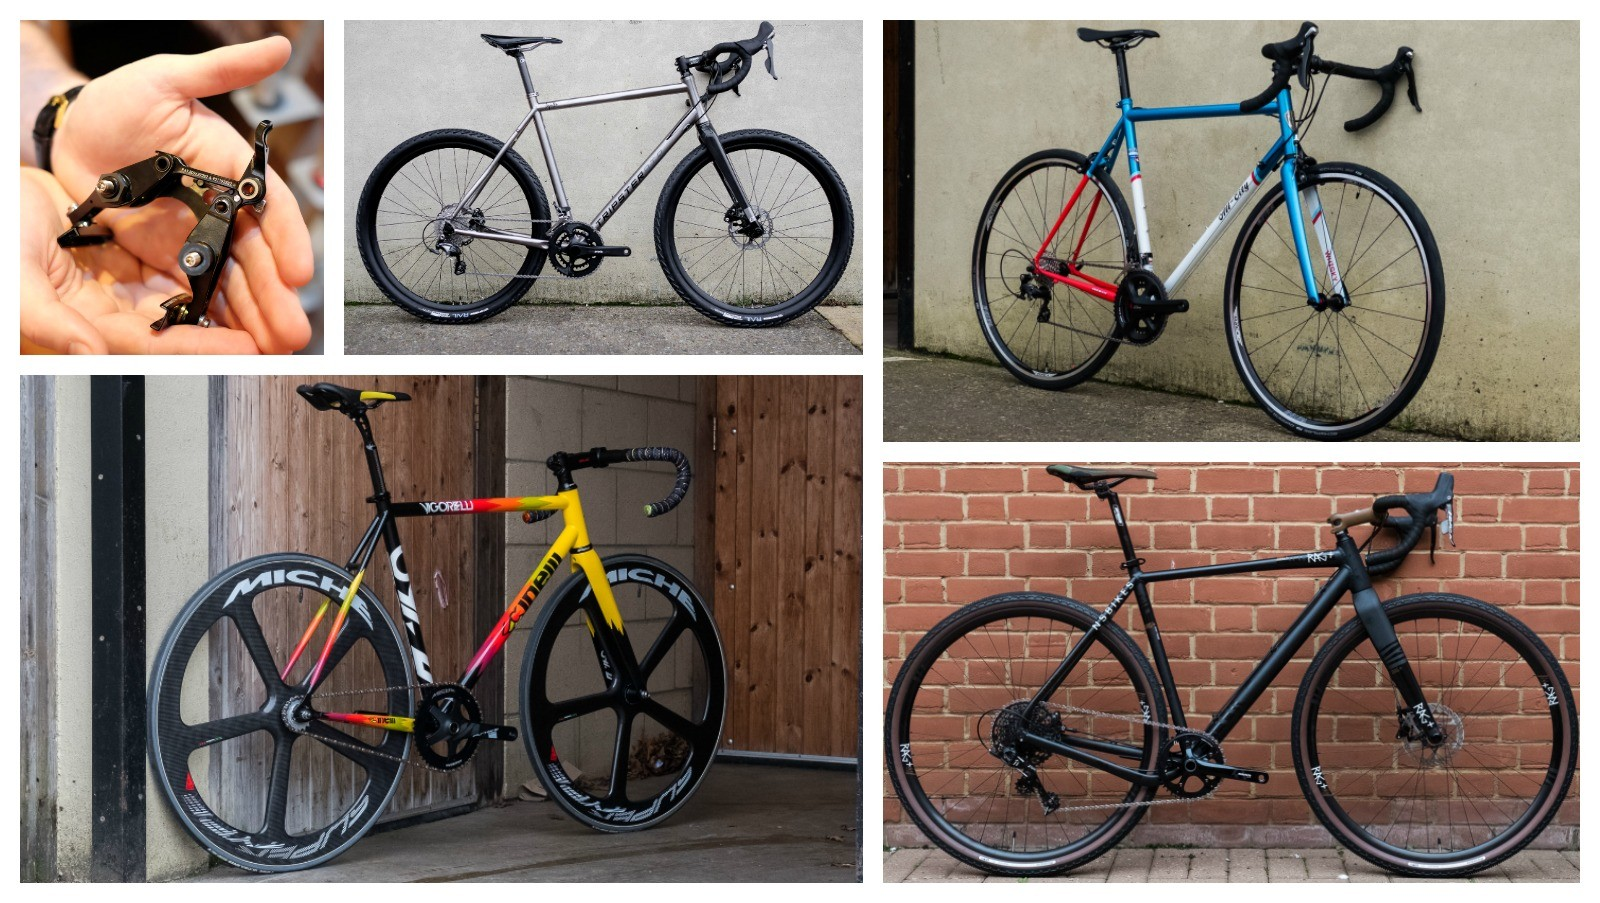 We've narrowed down the highlights from this year's Core Bike Show to just five of the finest road cycling products